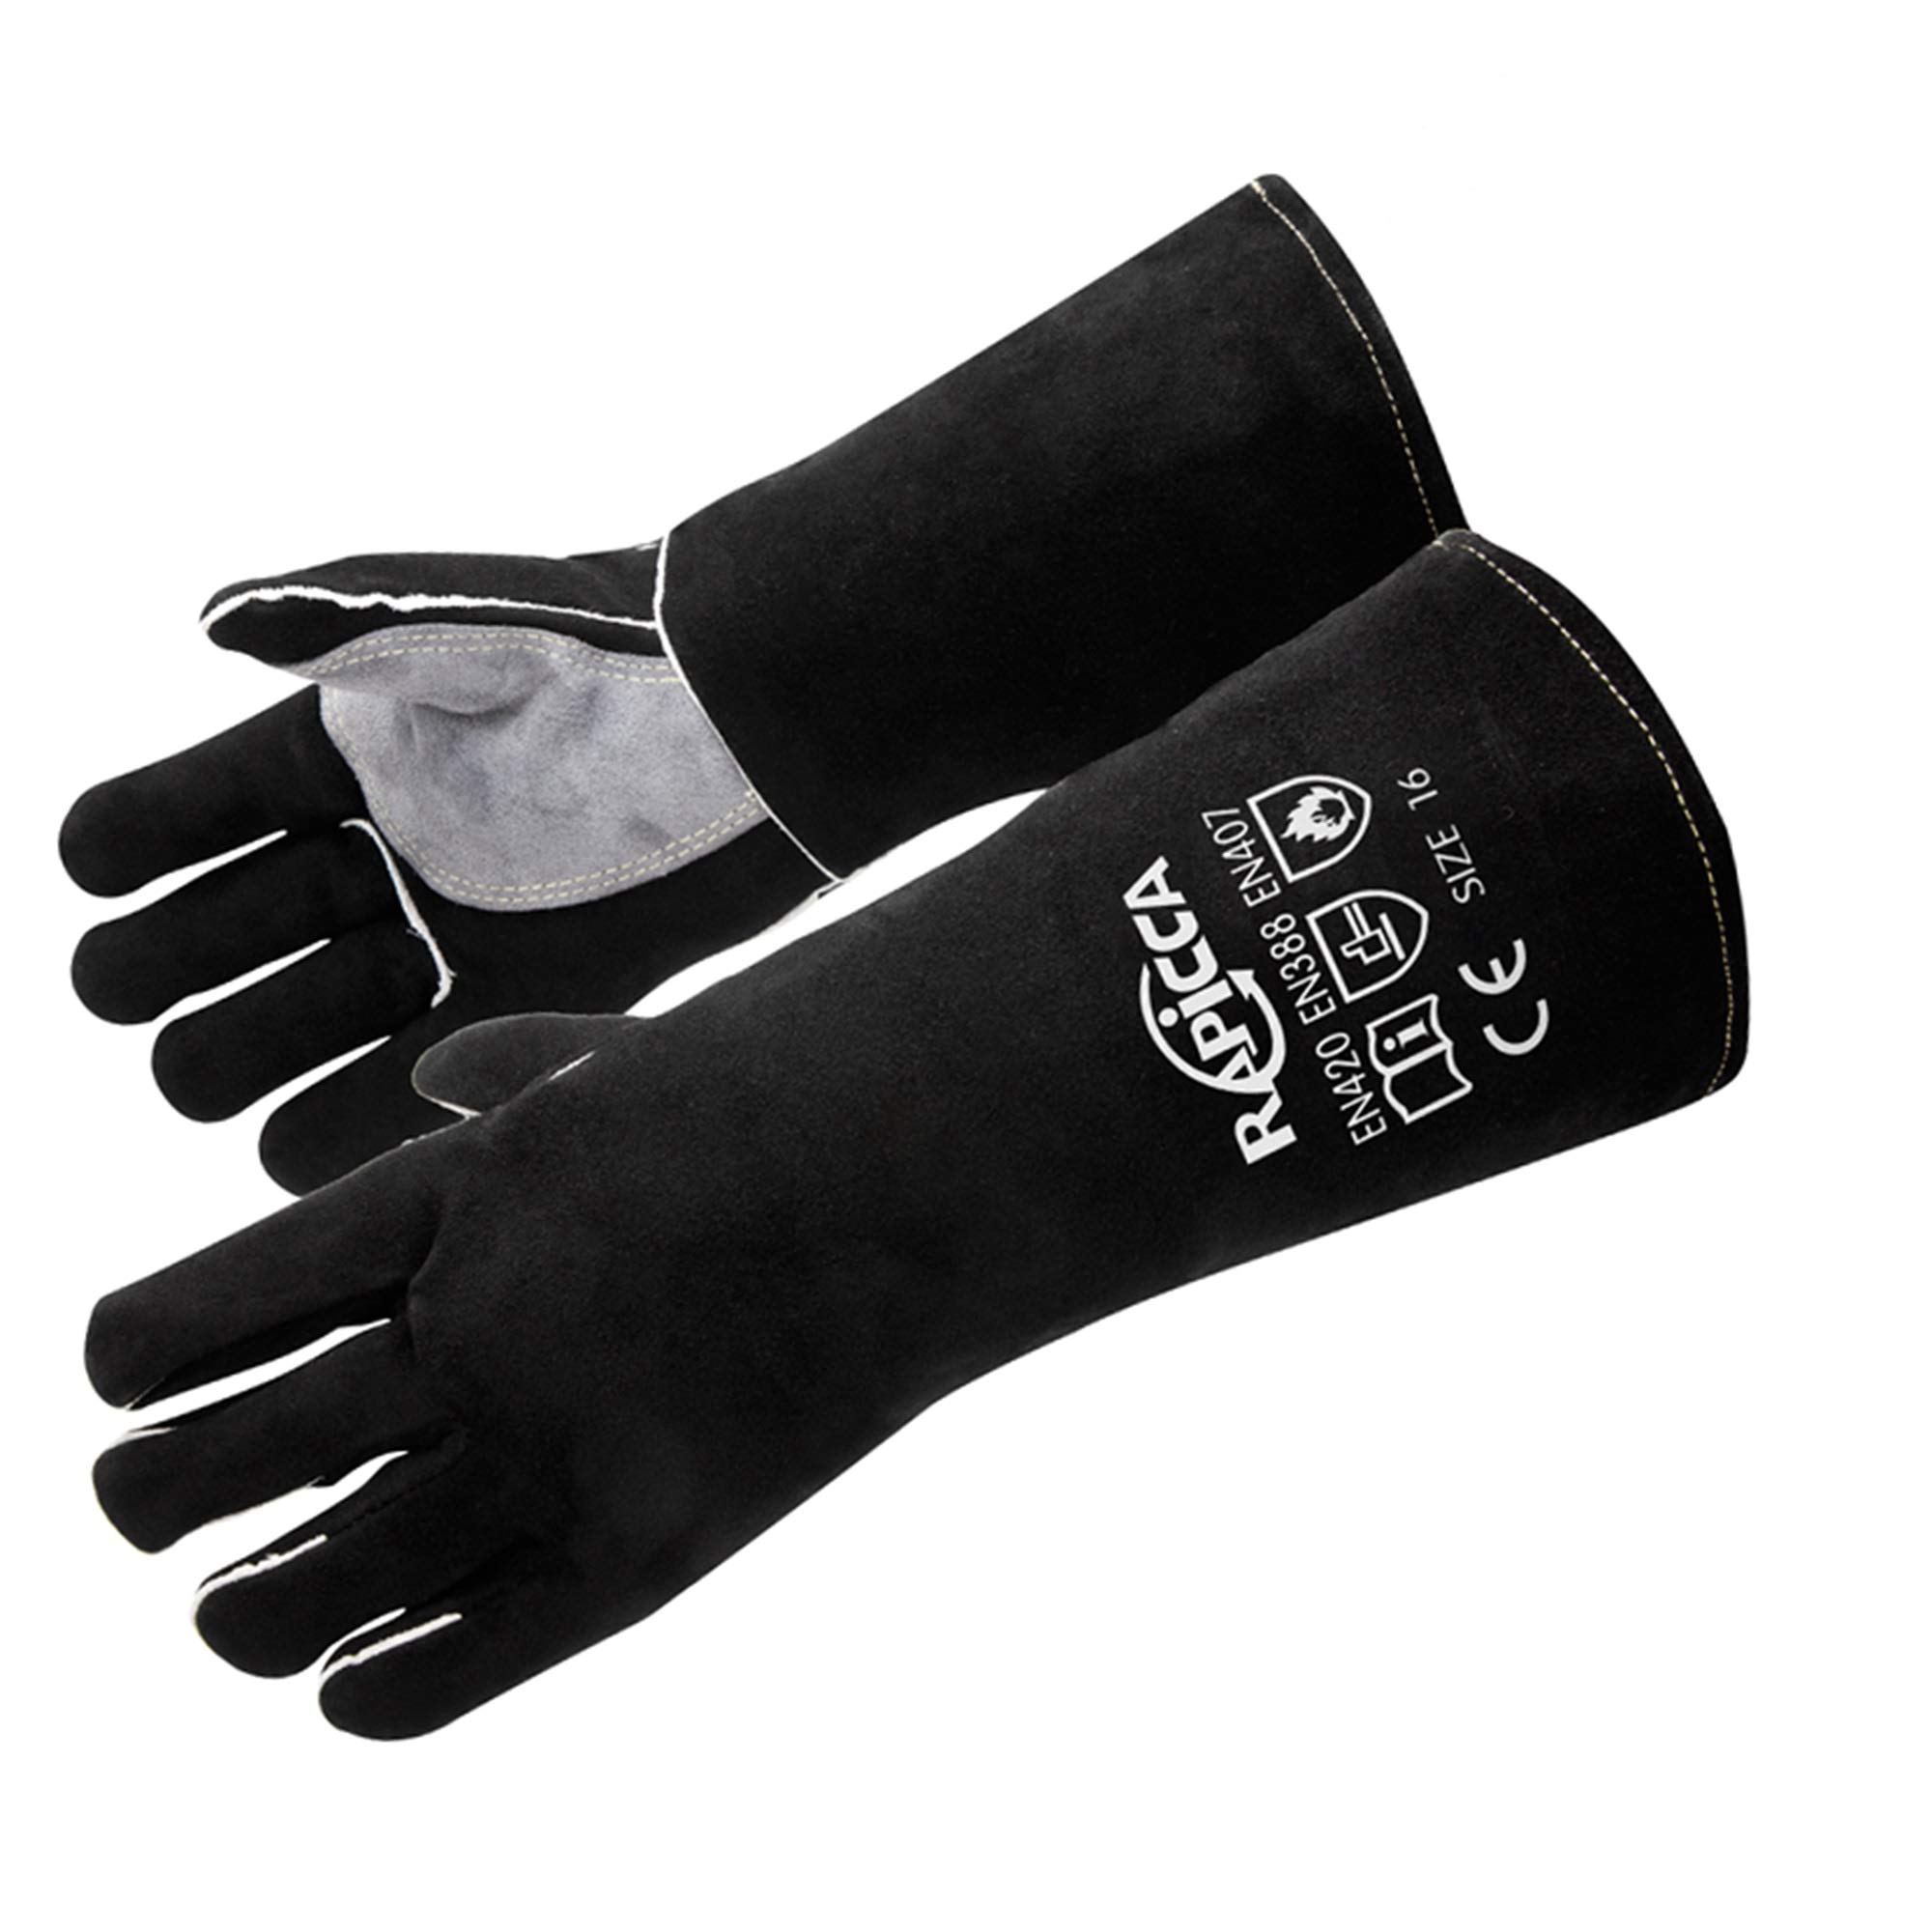 RAPICCA Extreme Heat & Fire Resistant Gloves Leather with Kevlar Stitching,Perfect for Fireplace, Stove, Oven Mitt, Grill Pit, Welding, Furnace,BBQ, Mig, Pot Holder, Animal Handling, Black-Grey14 Inch